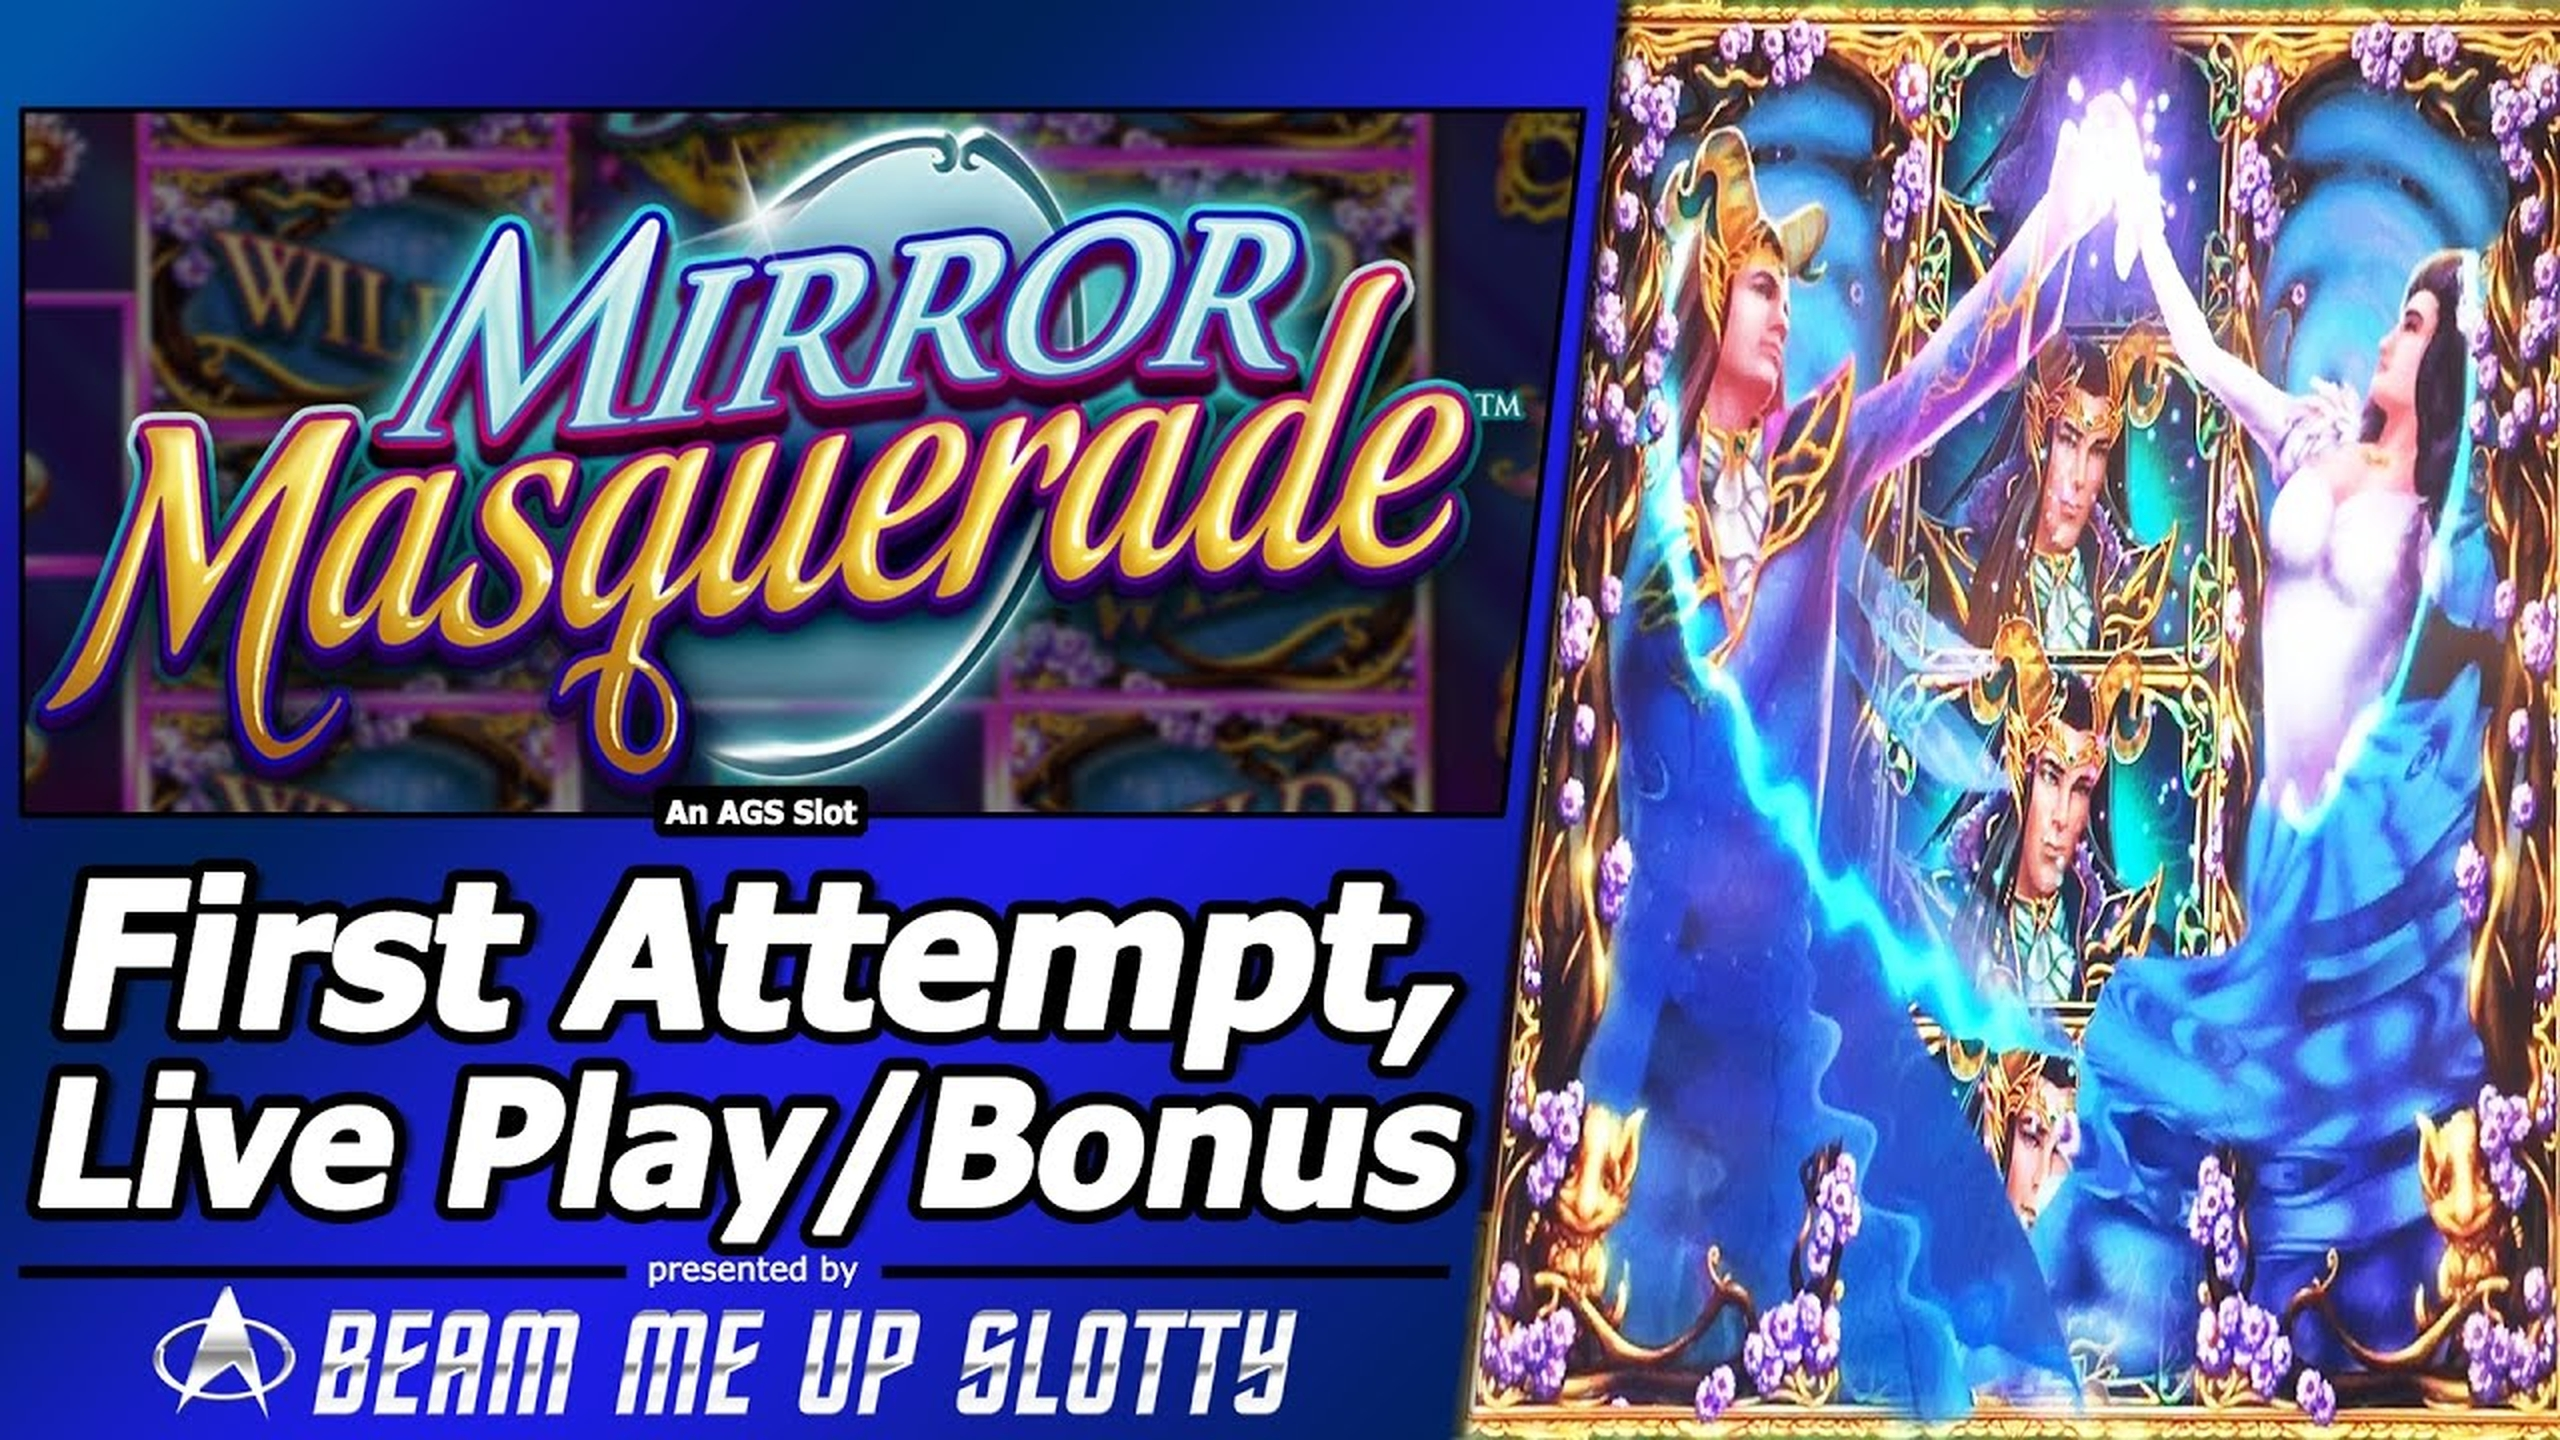 The Mirror Masquerade Online Slot Demo Game by AGS